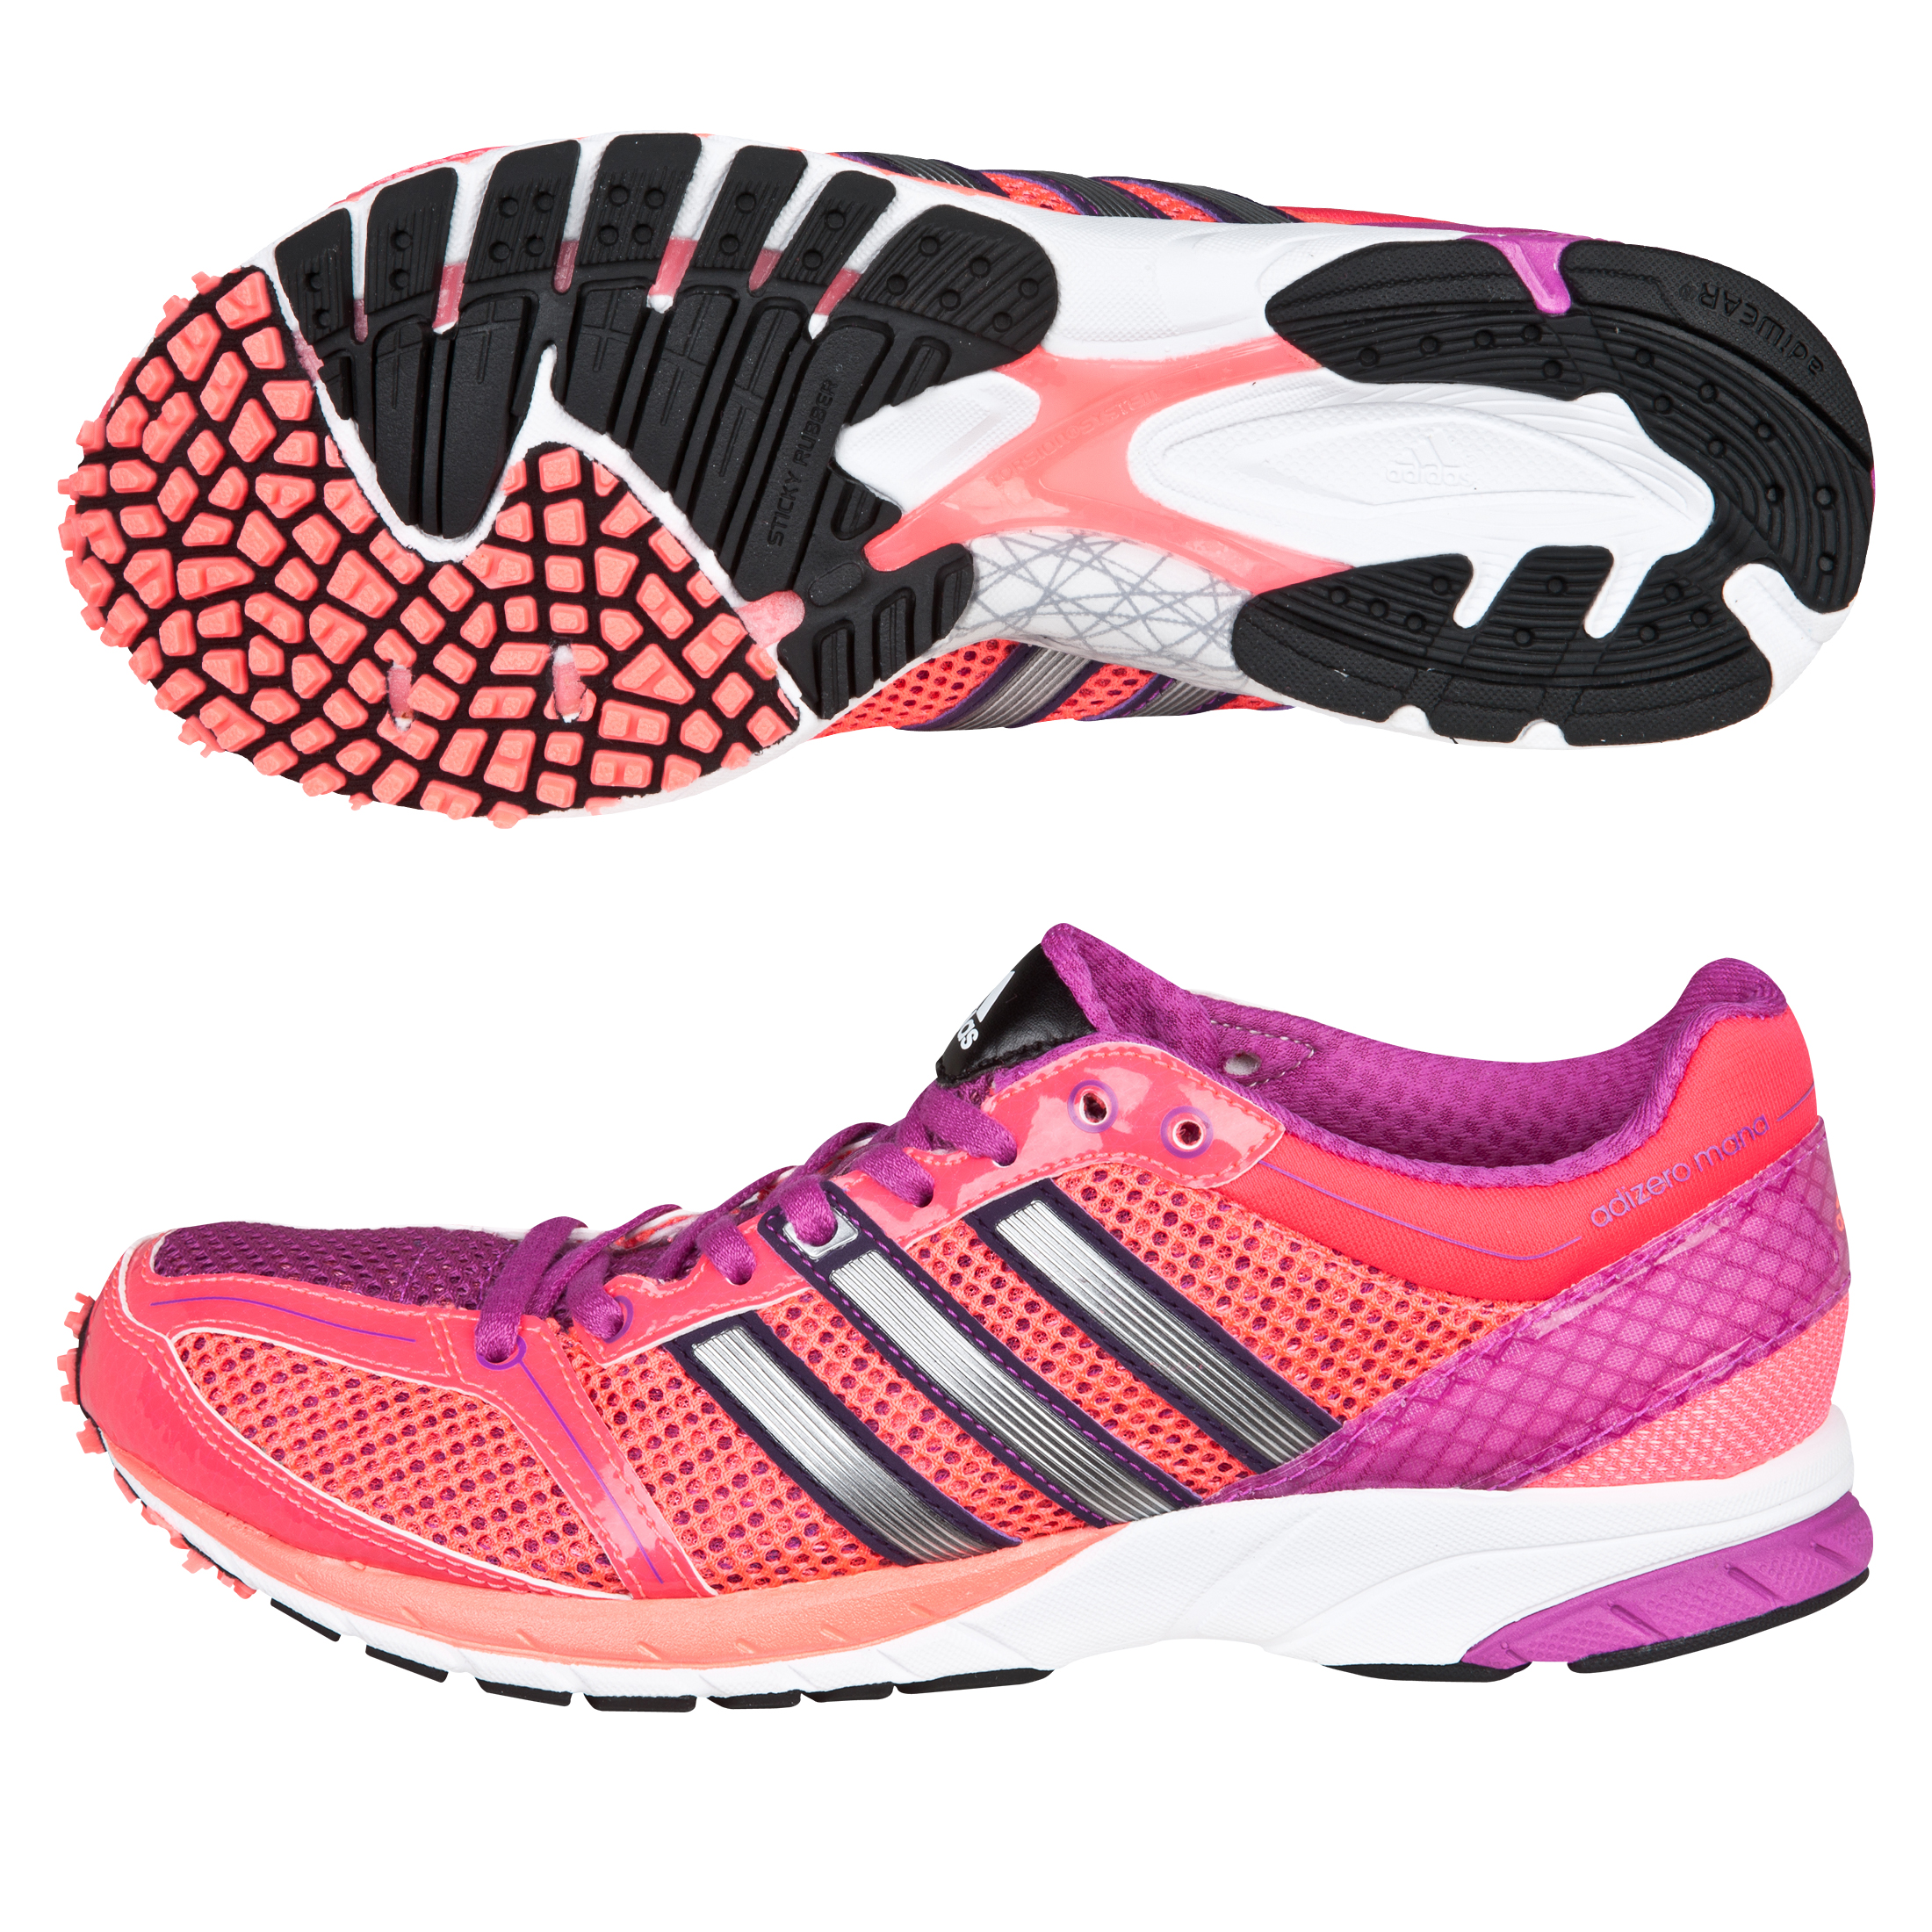 Adidas Adizero Mana 7 Trainer - Womens